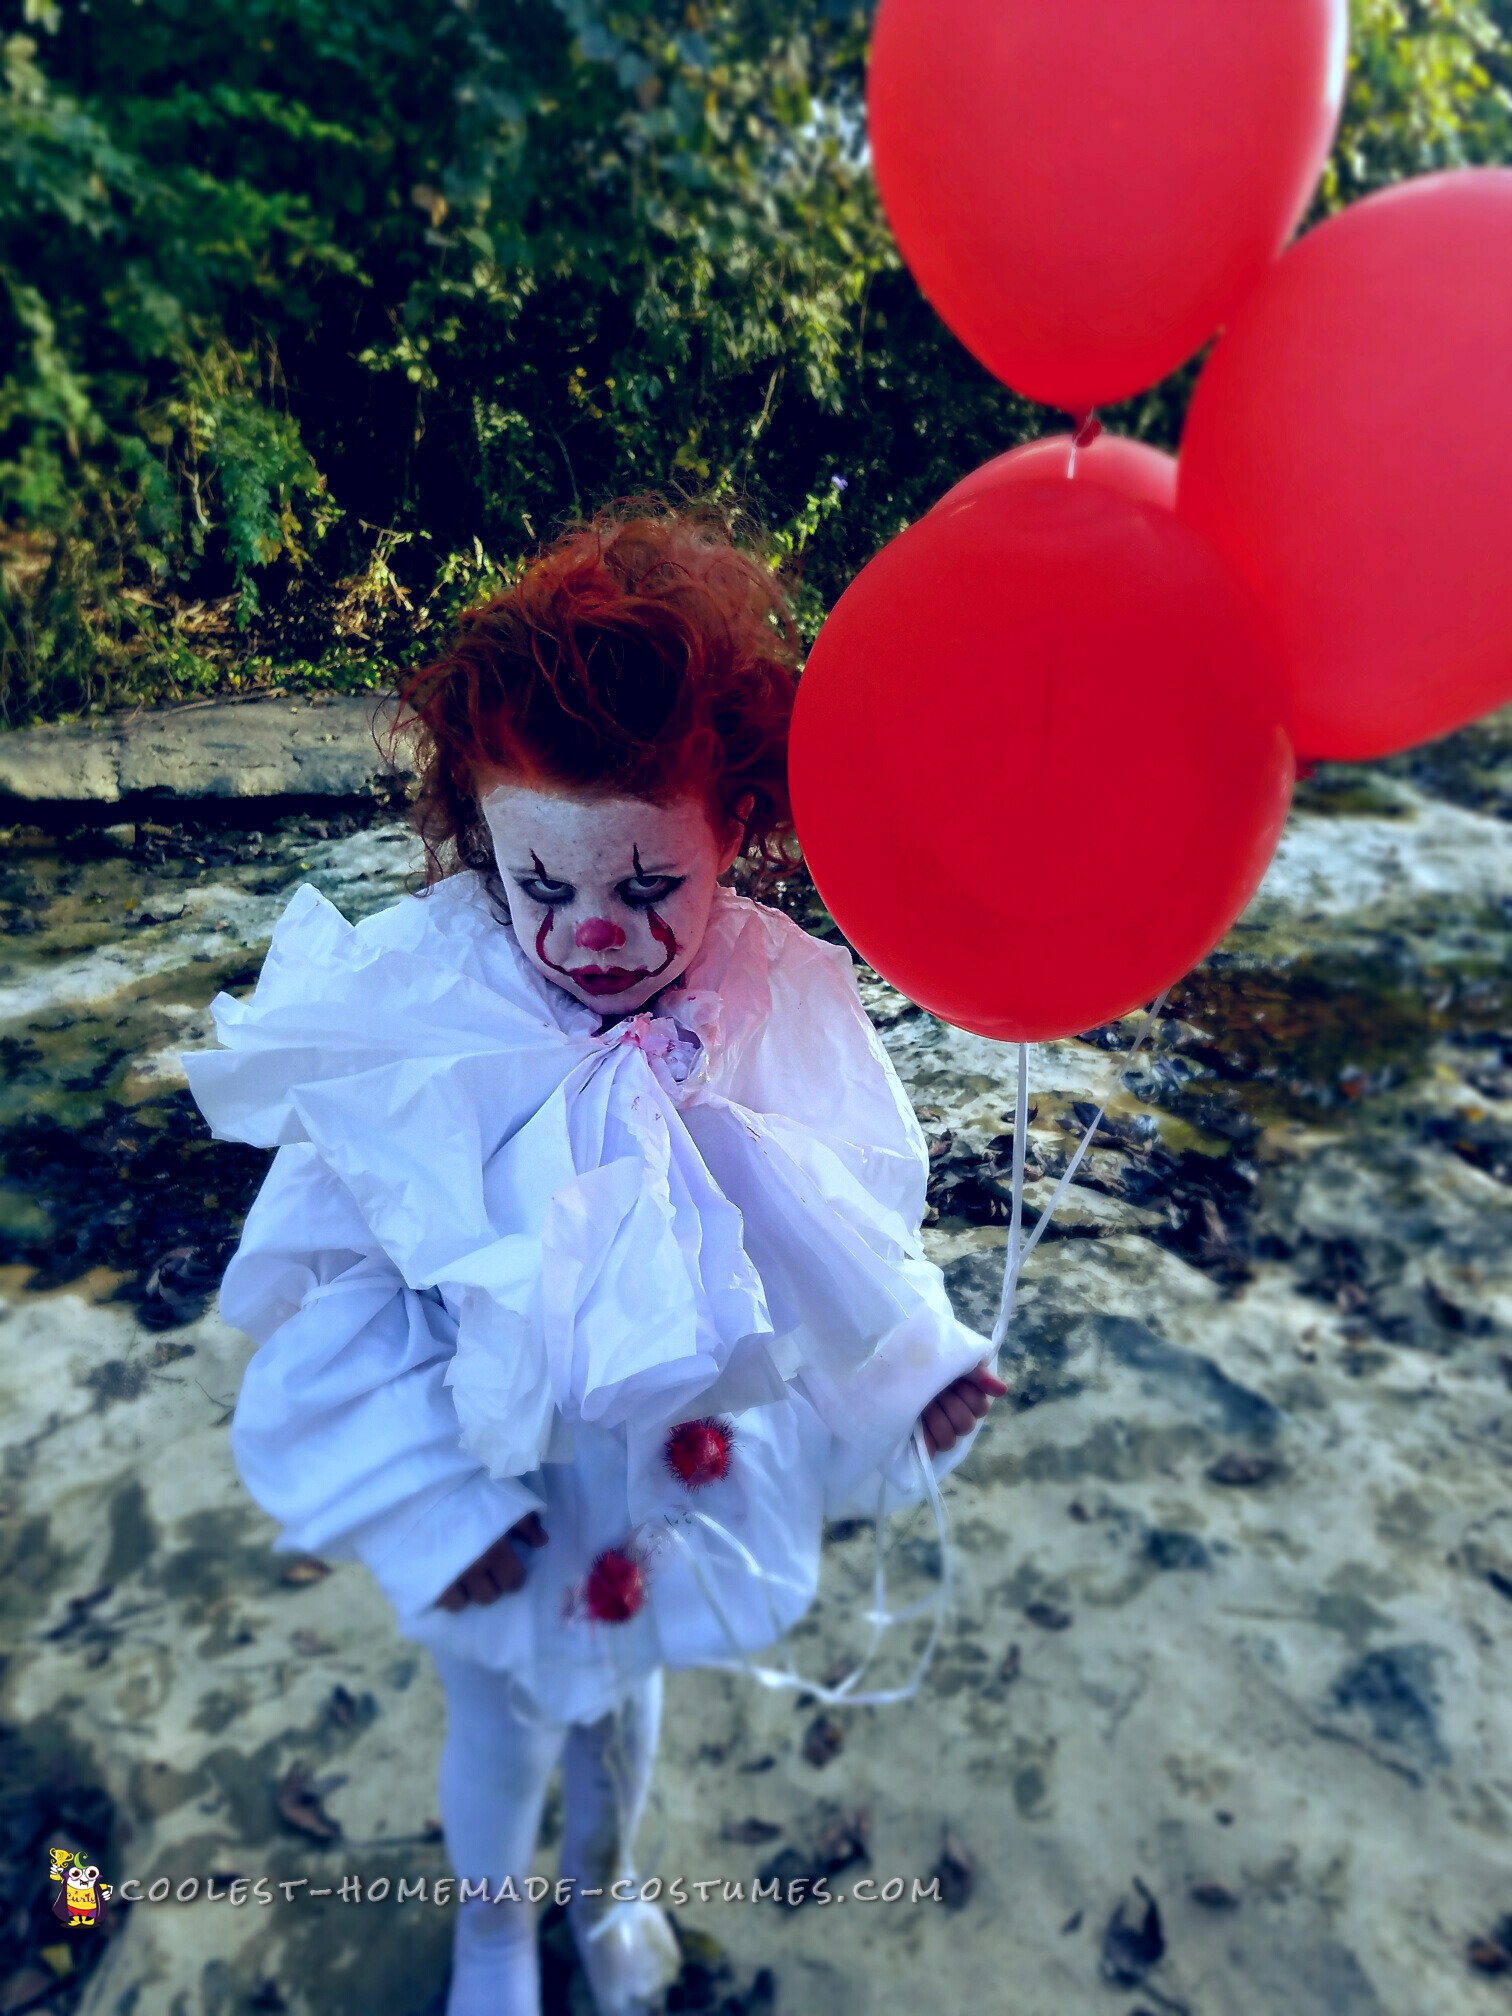 The cutest pennywise costume you will ever see